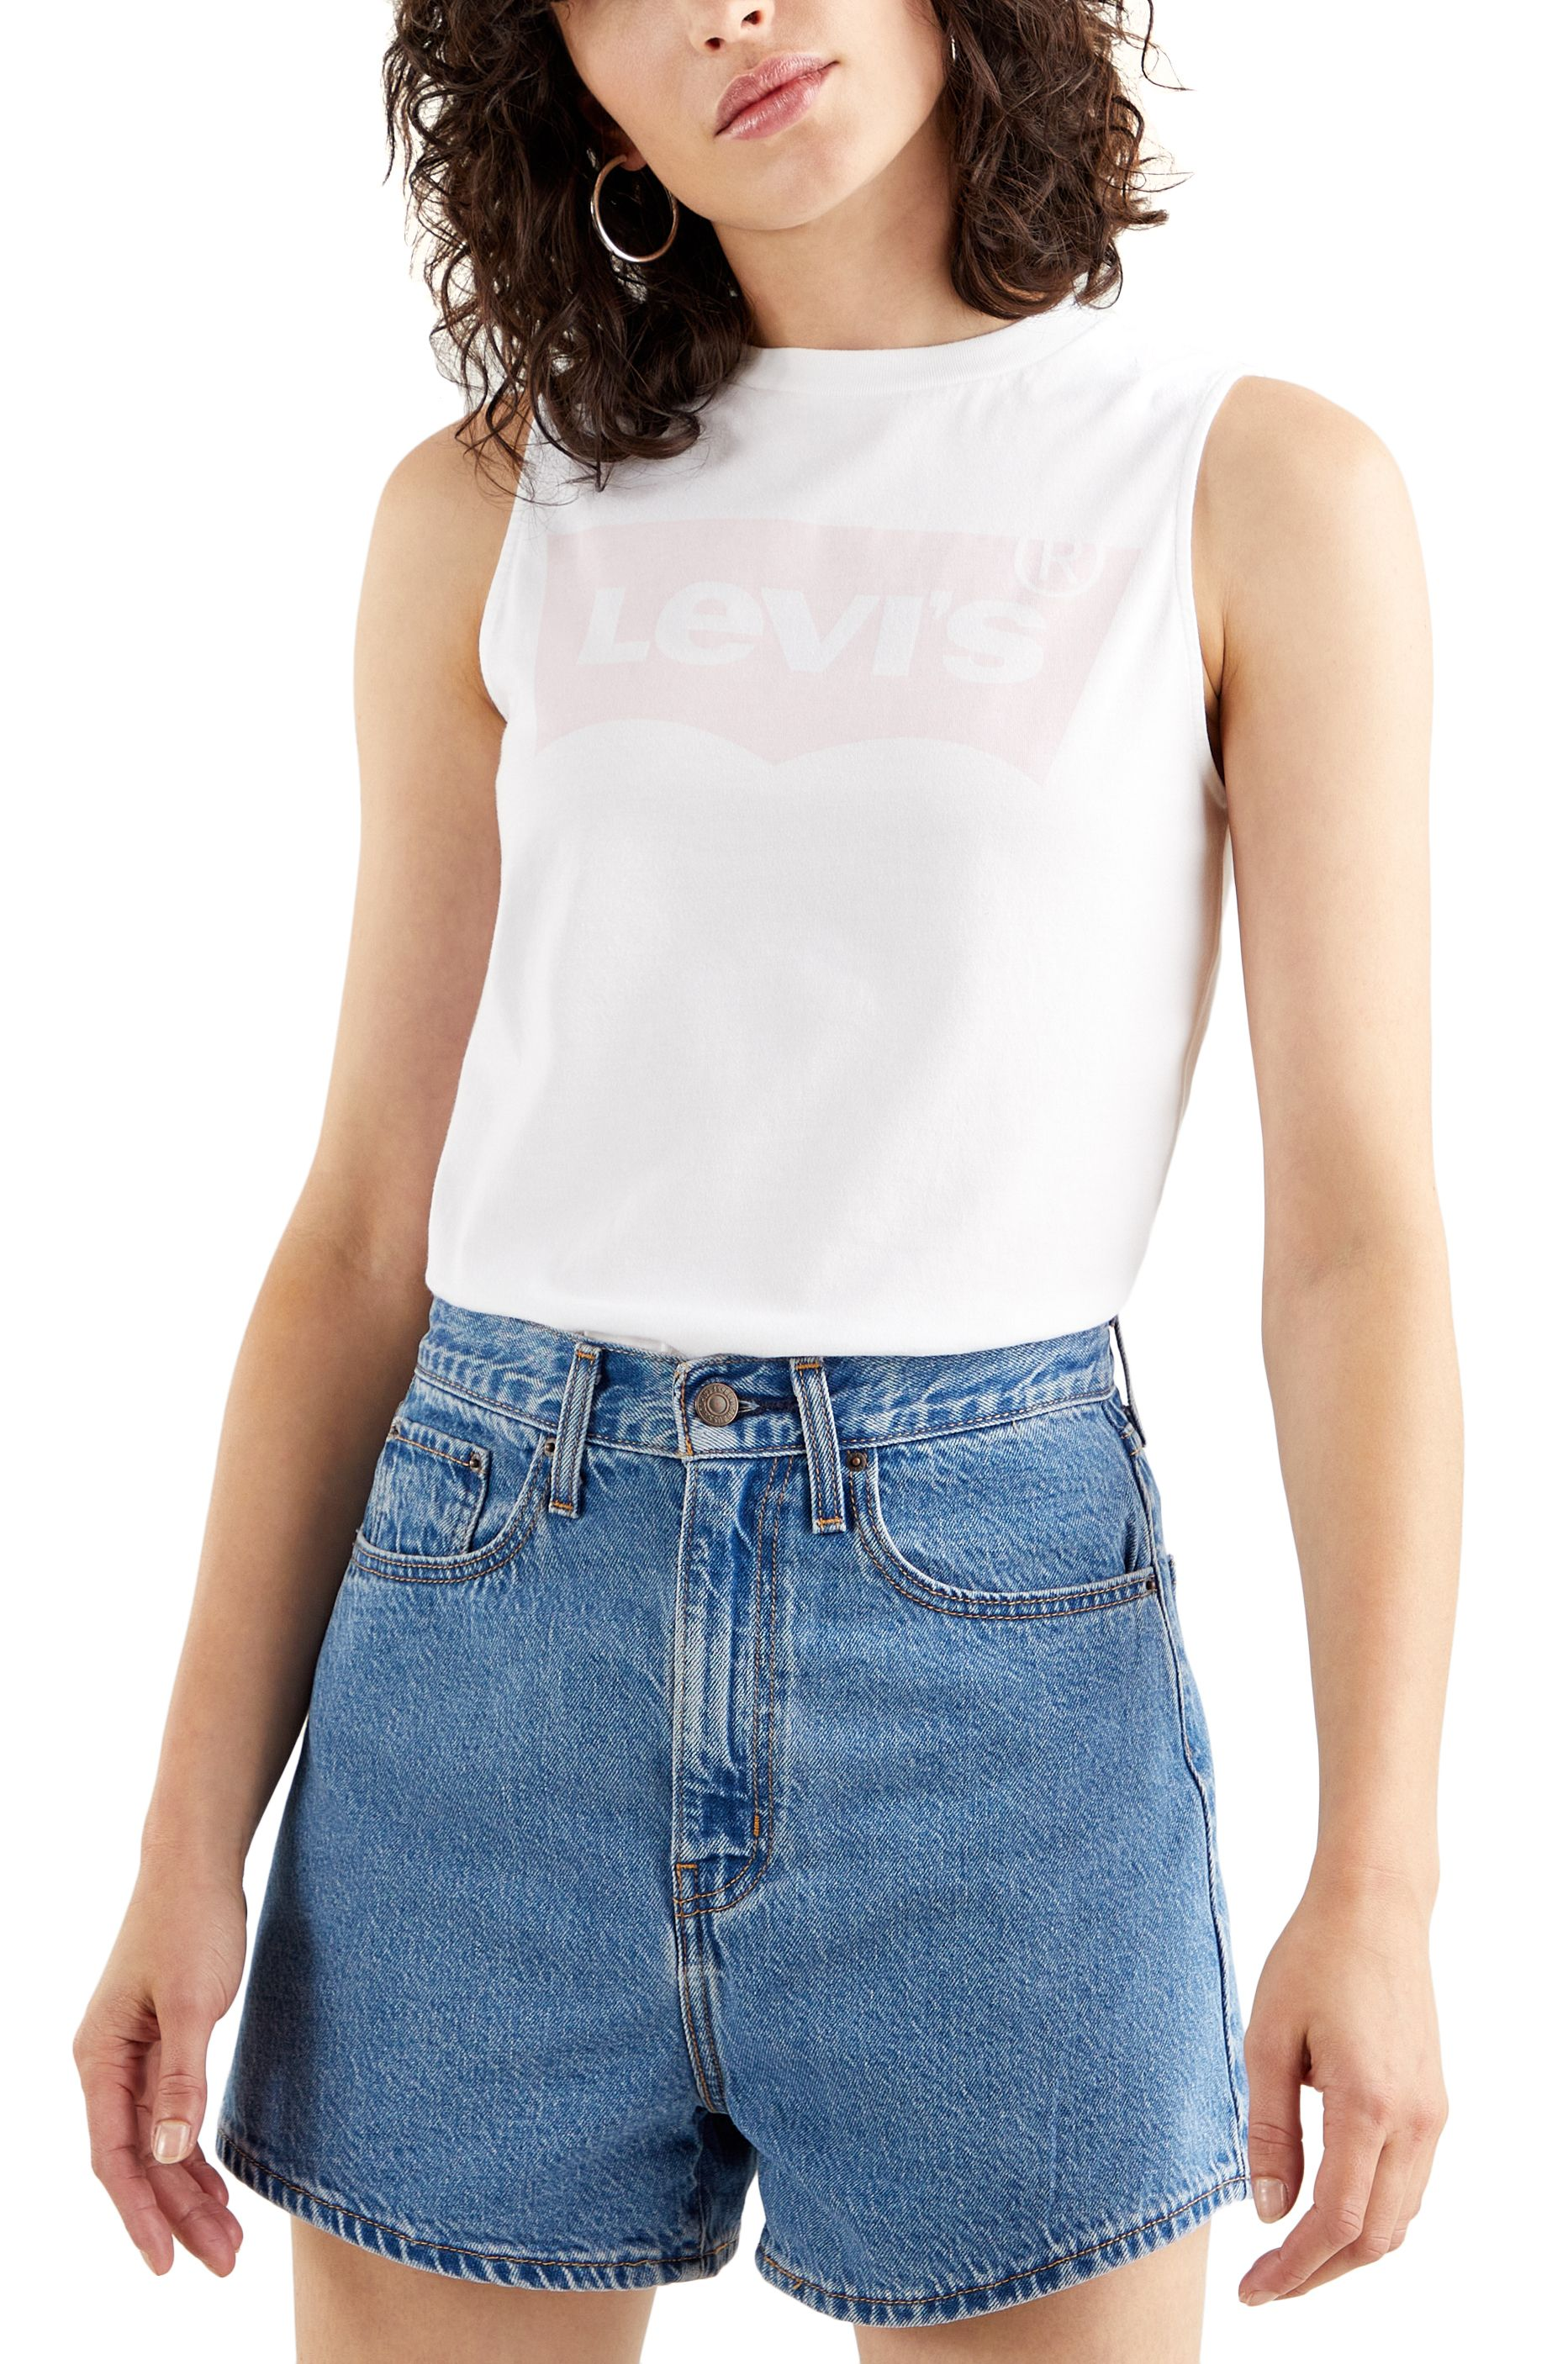 Levis Top GRAPHIC BAND TANK Batwing Band Tank White +